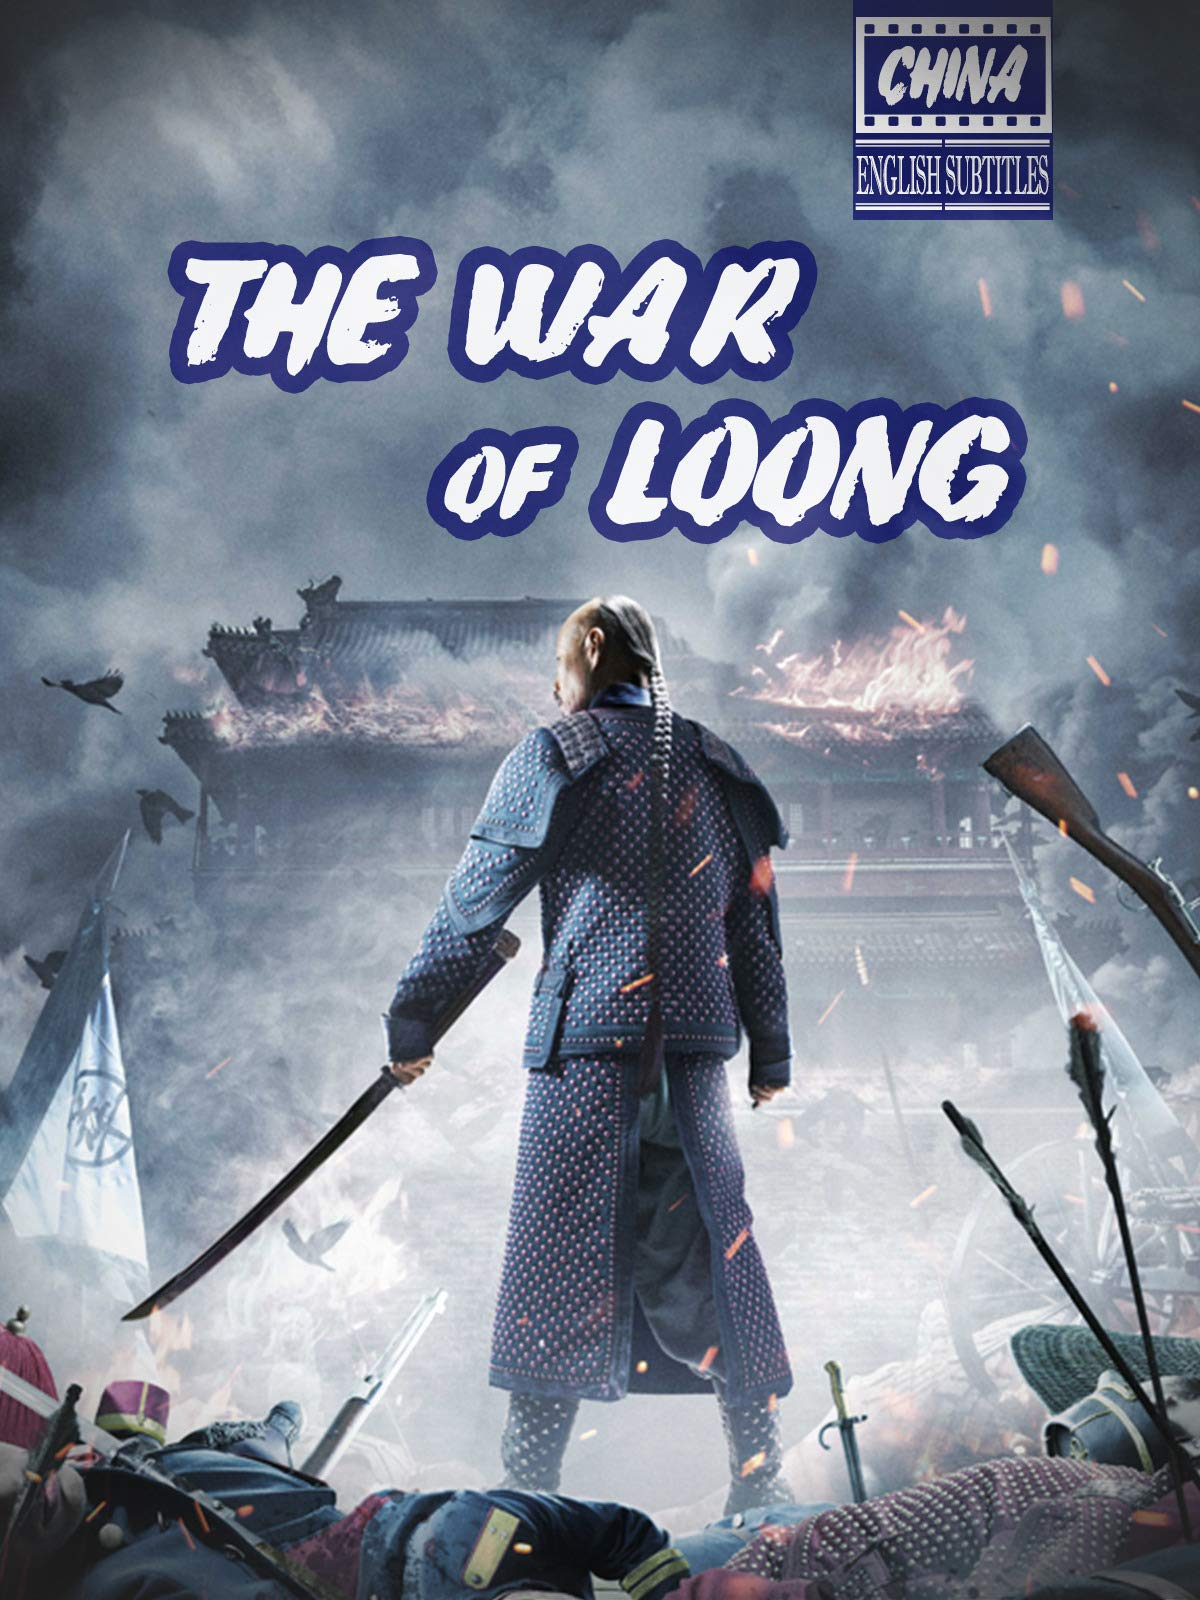 The War of Loong (english subtitles) China on Amazon Prime Video UK